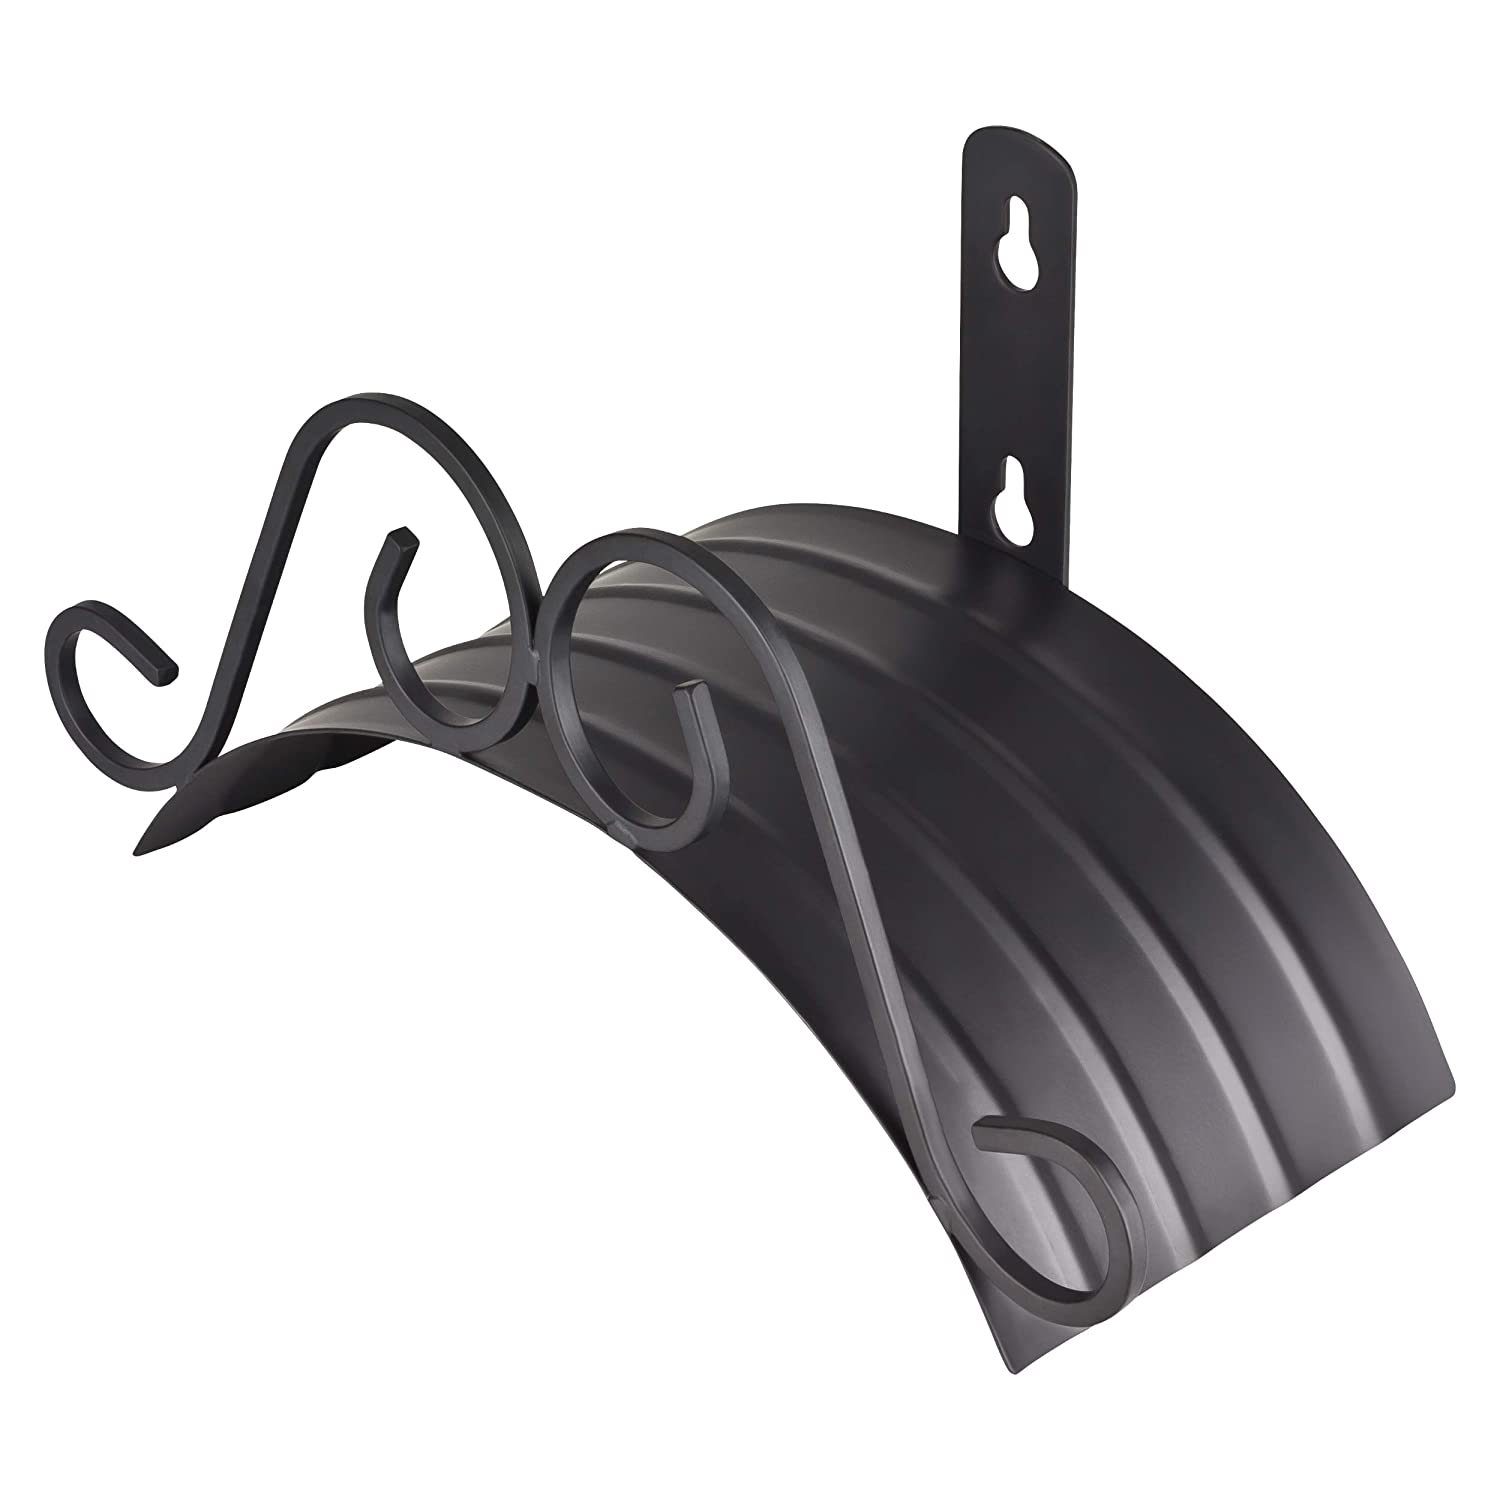 GardenMate Classic Wall Mounted Hose Hanger for a 40 metre Long Hose, Made From Weather-Resistant Powder-Coated Metal GardenMate® 4260313265350